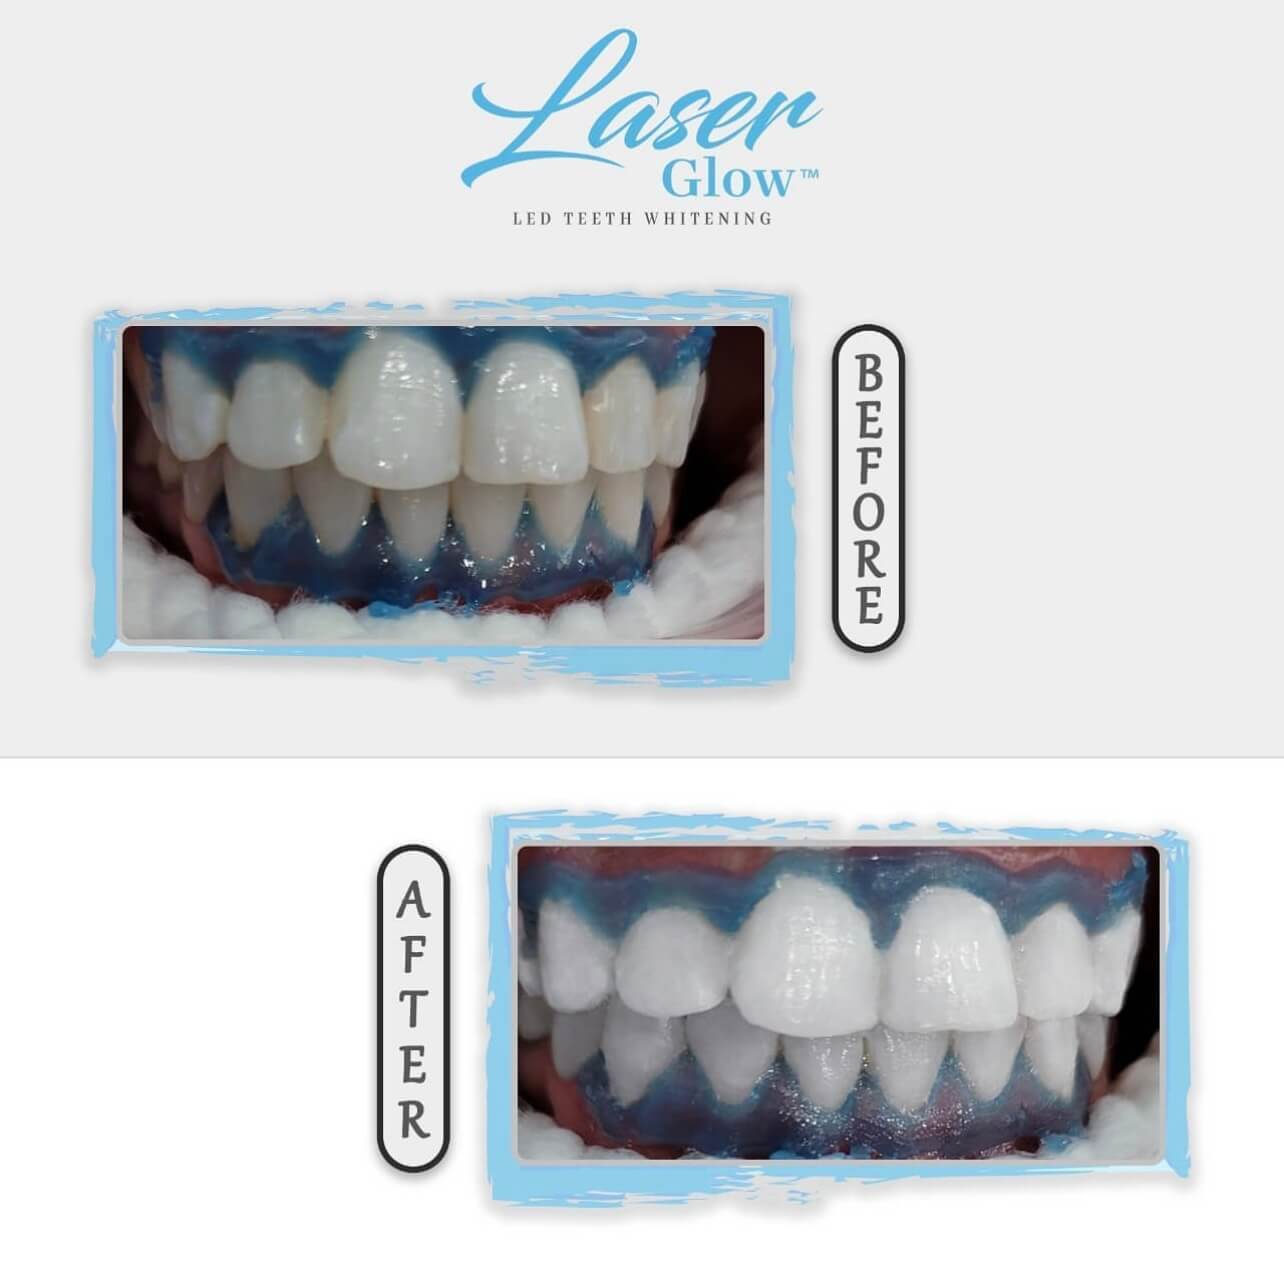 laser glow led teeth whitening kit results